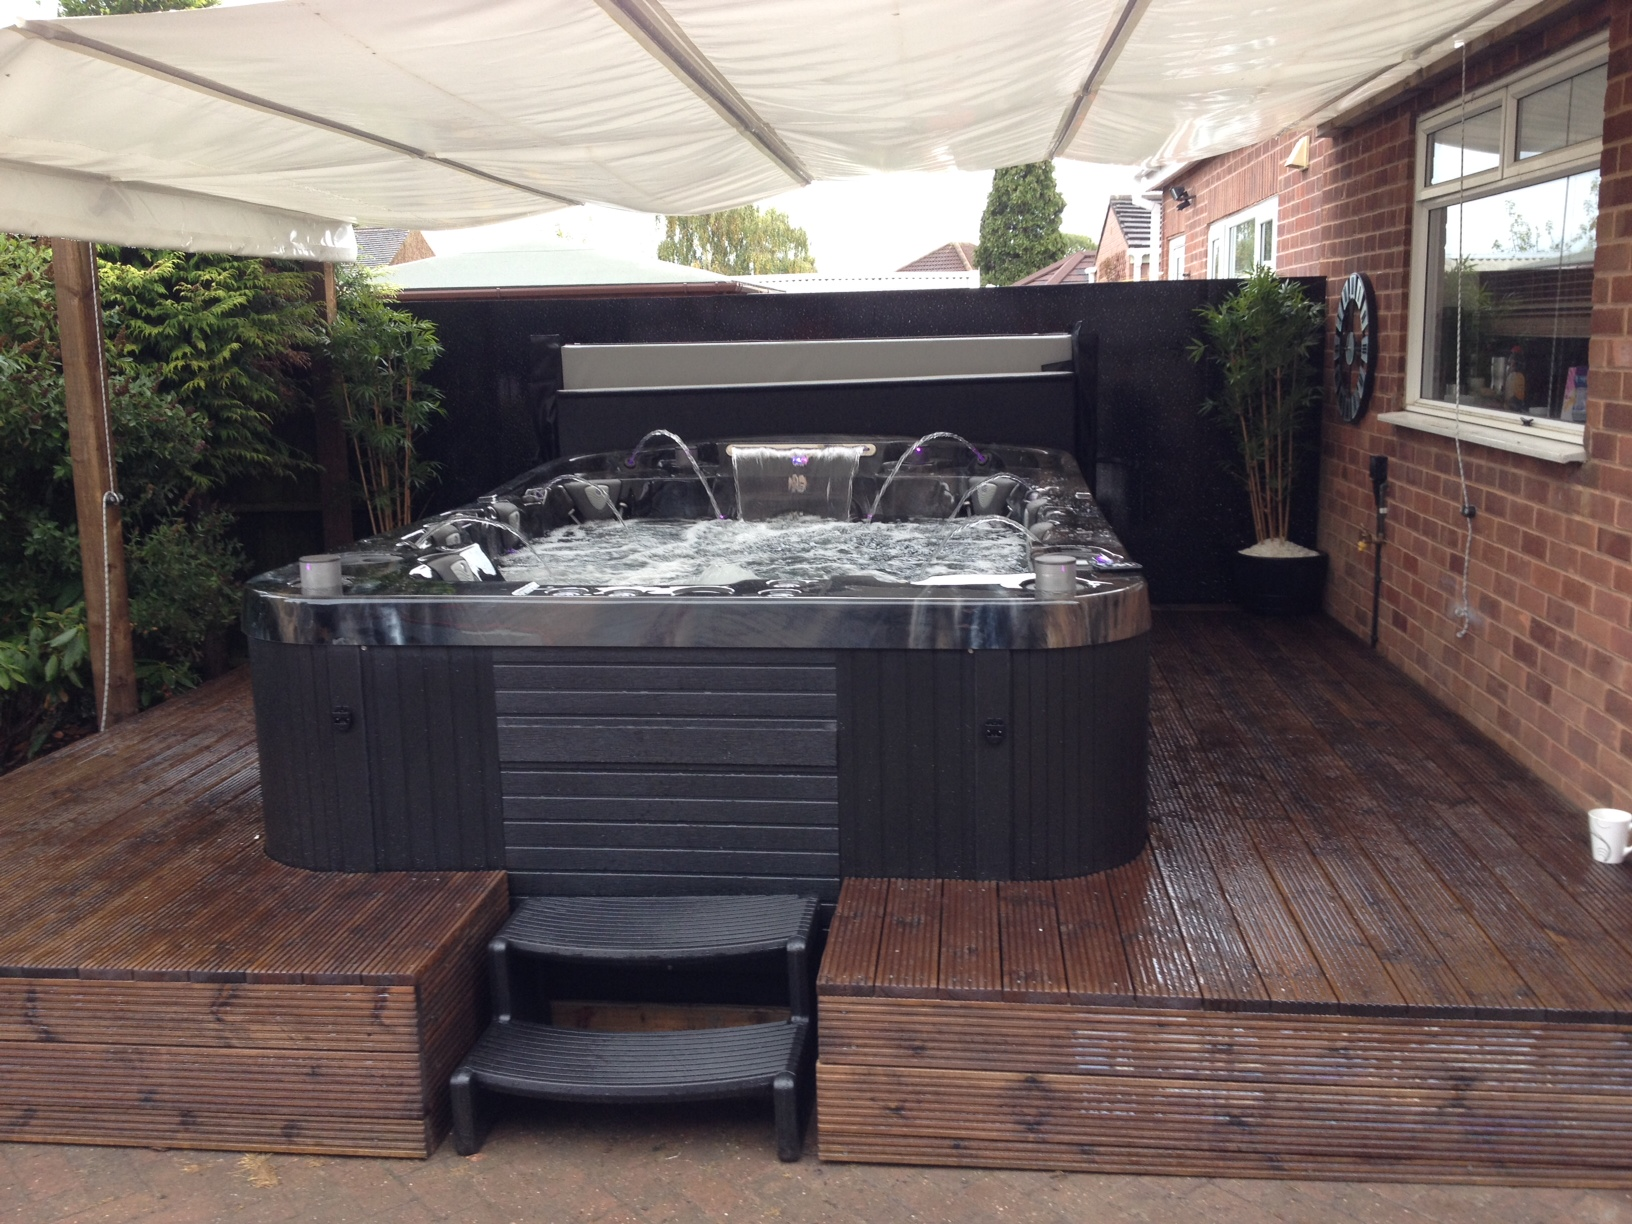 Coast Spas Mirage Curve Hot Tub Galley Common Review